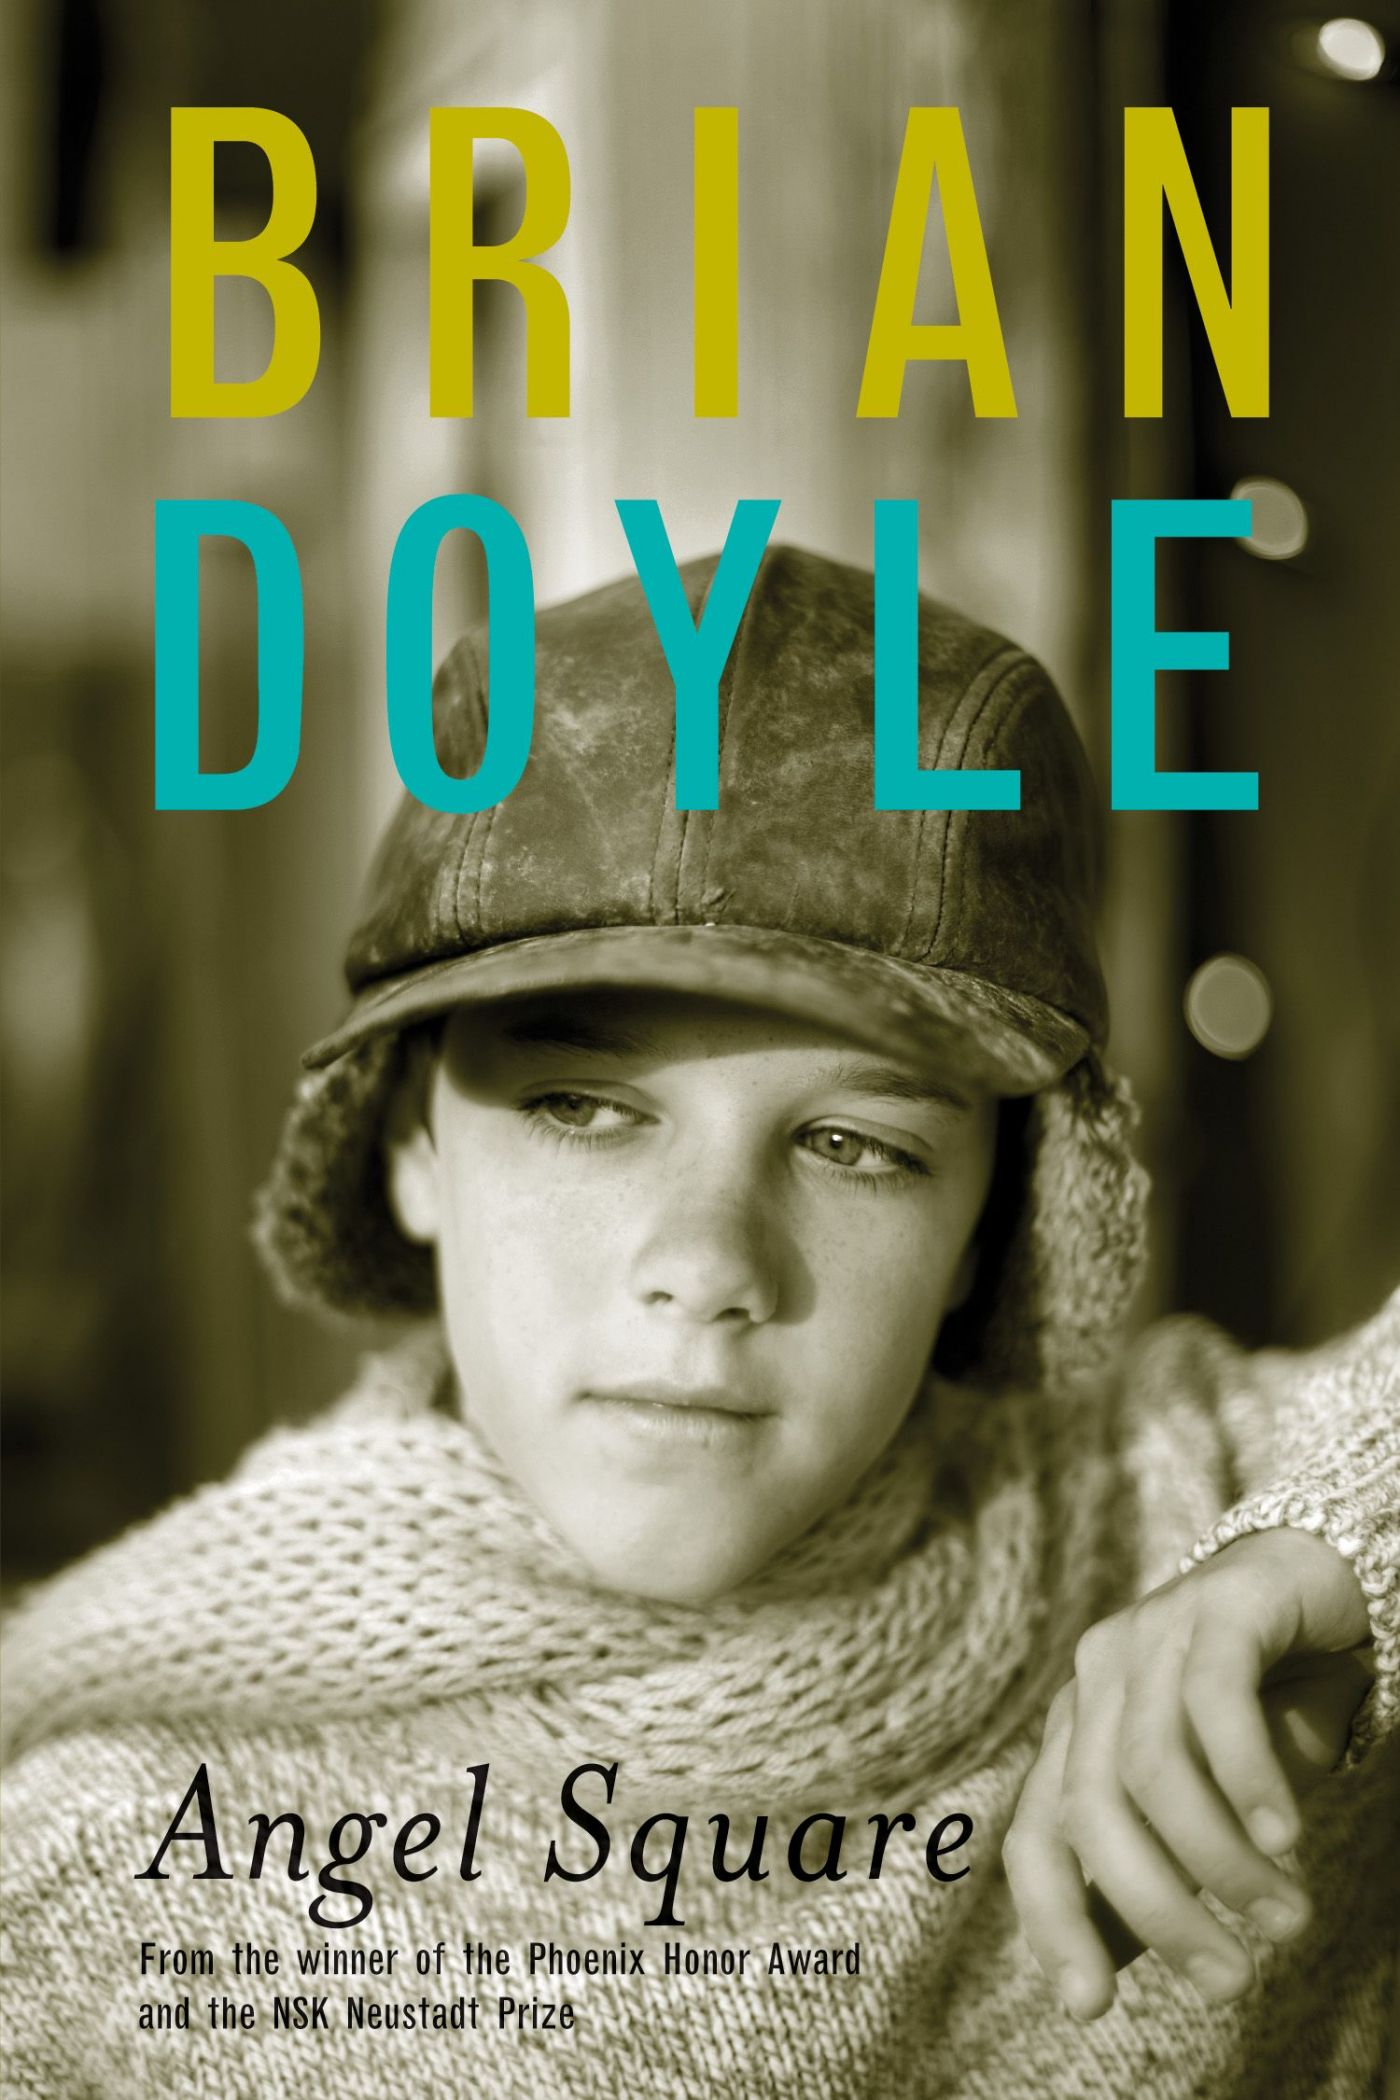 Colour photograph of a young boy wearing a wool cap and sweater, looking thoughtful. Text typewritten in English. The author's name appears in yellow and blue.